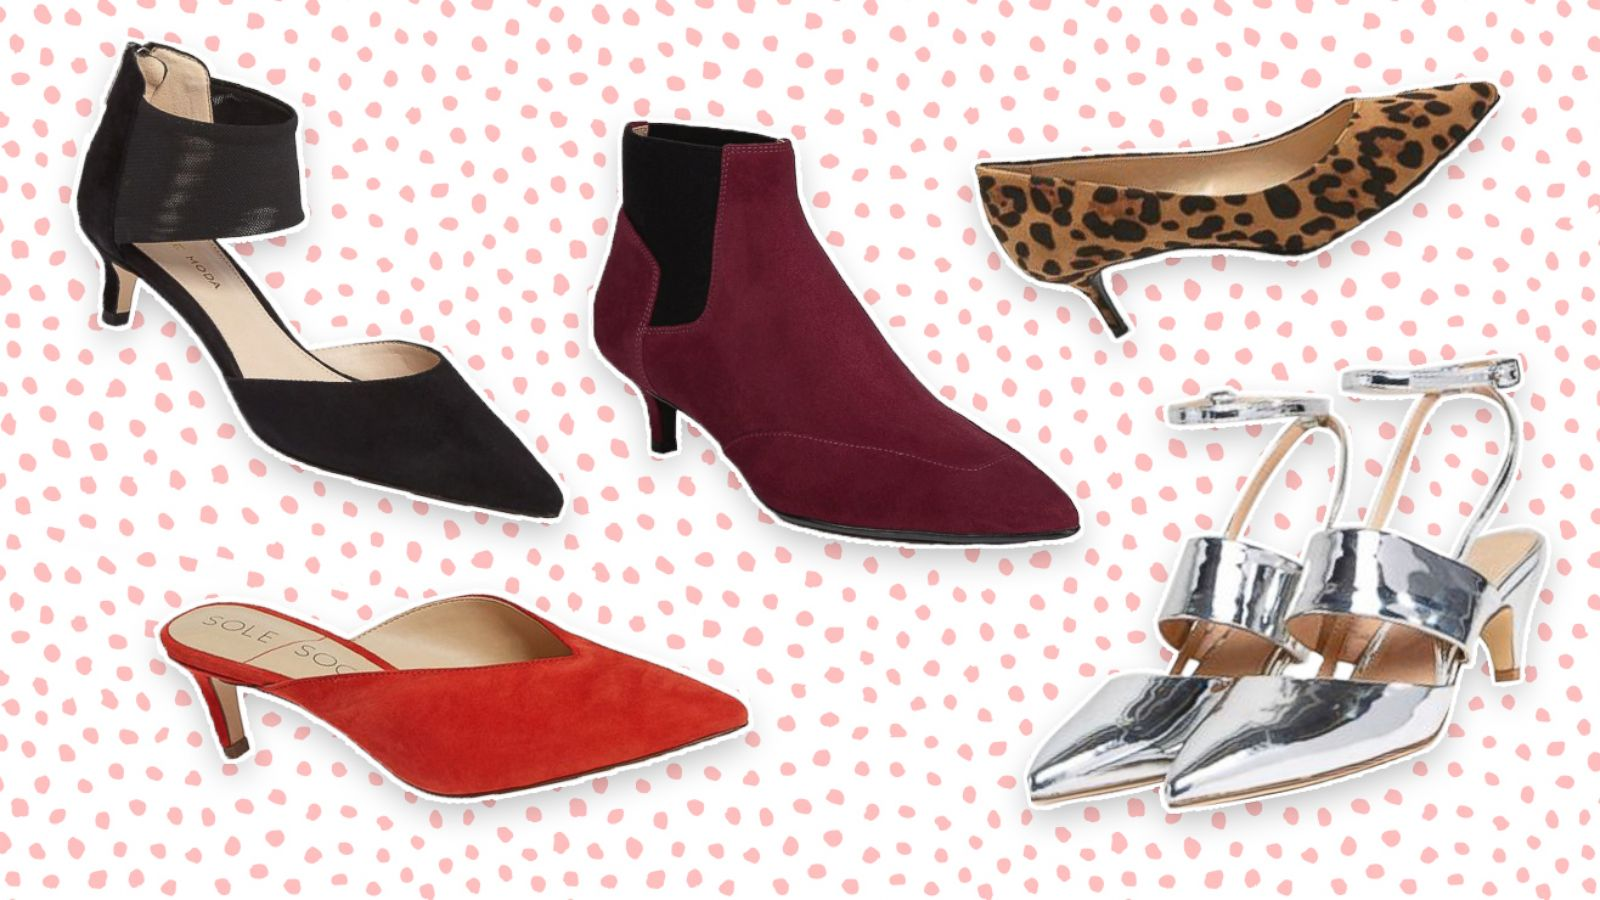 1e20bf62bb4 12 kitten heels you need in your closet - ABC News